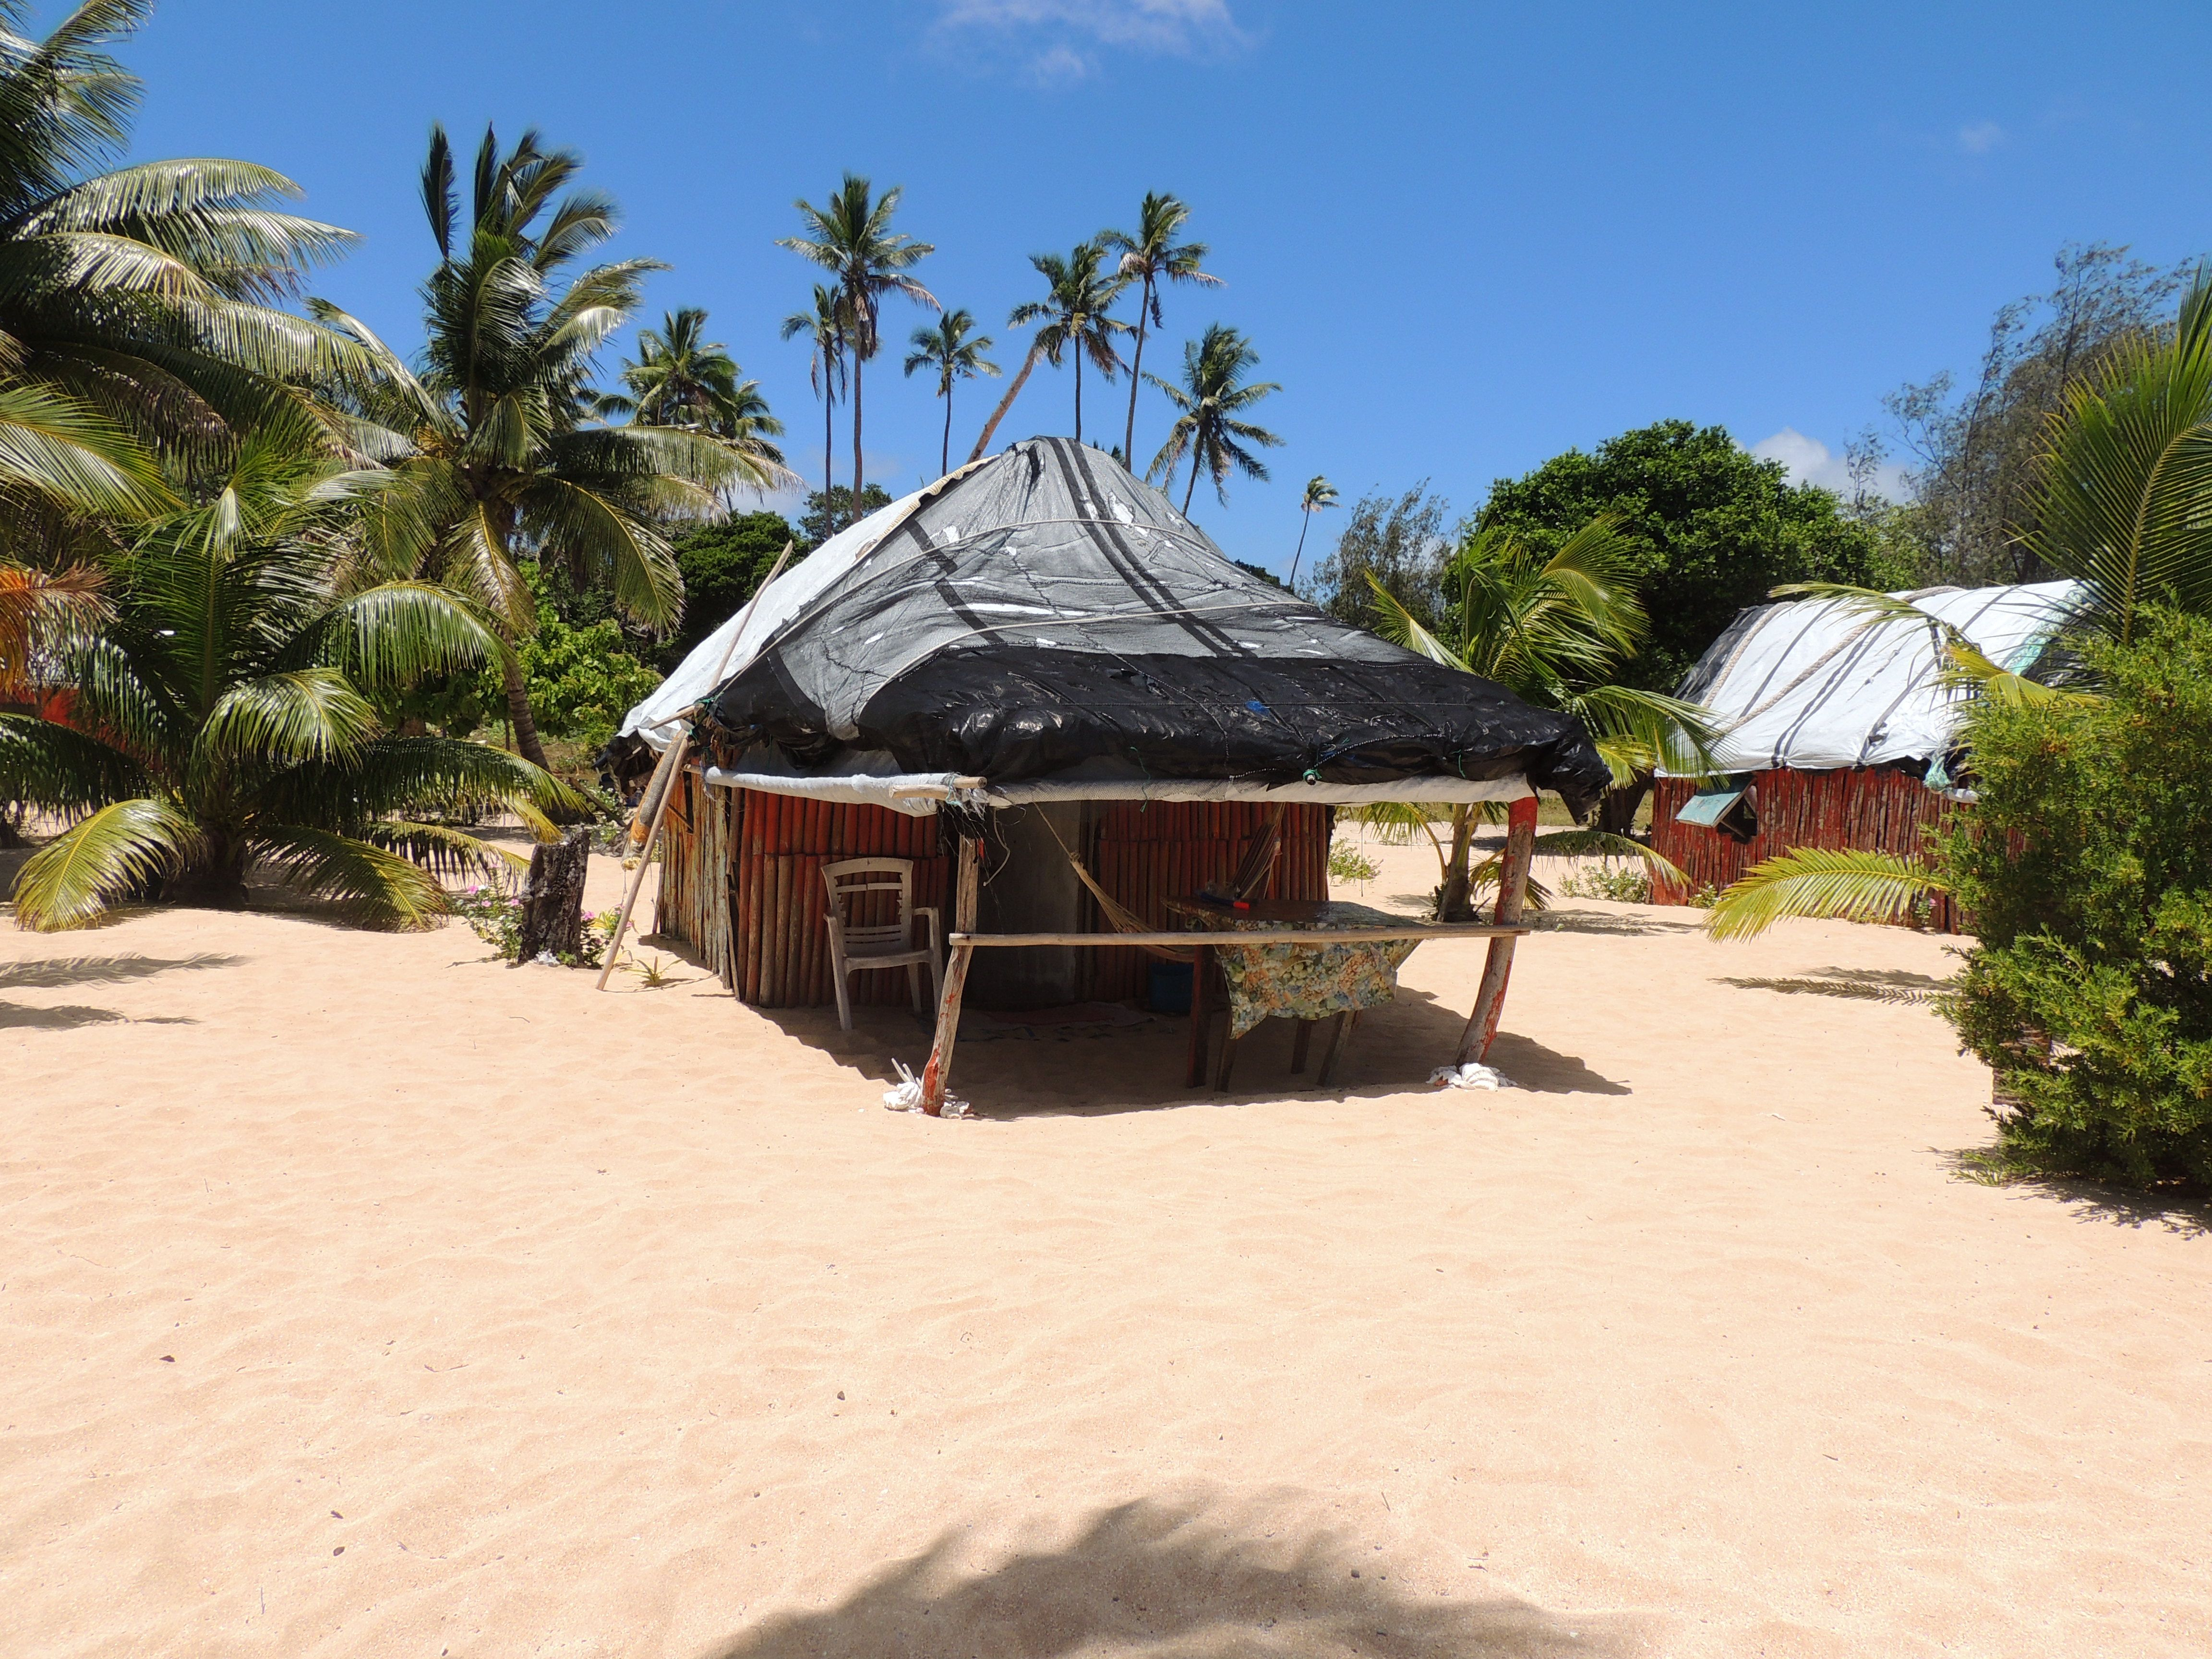 Staying at tianas on uoleva island haapai tonga viatori staying at tianas on uoleva island haapai tonga our fale on the beach sciox Images